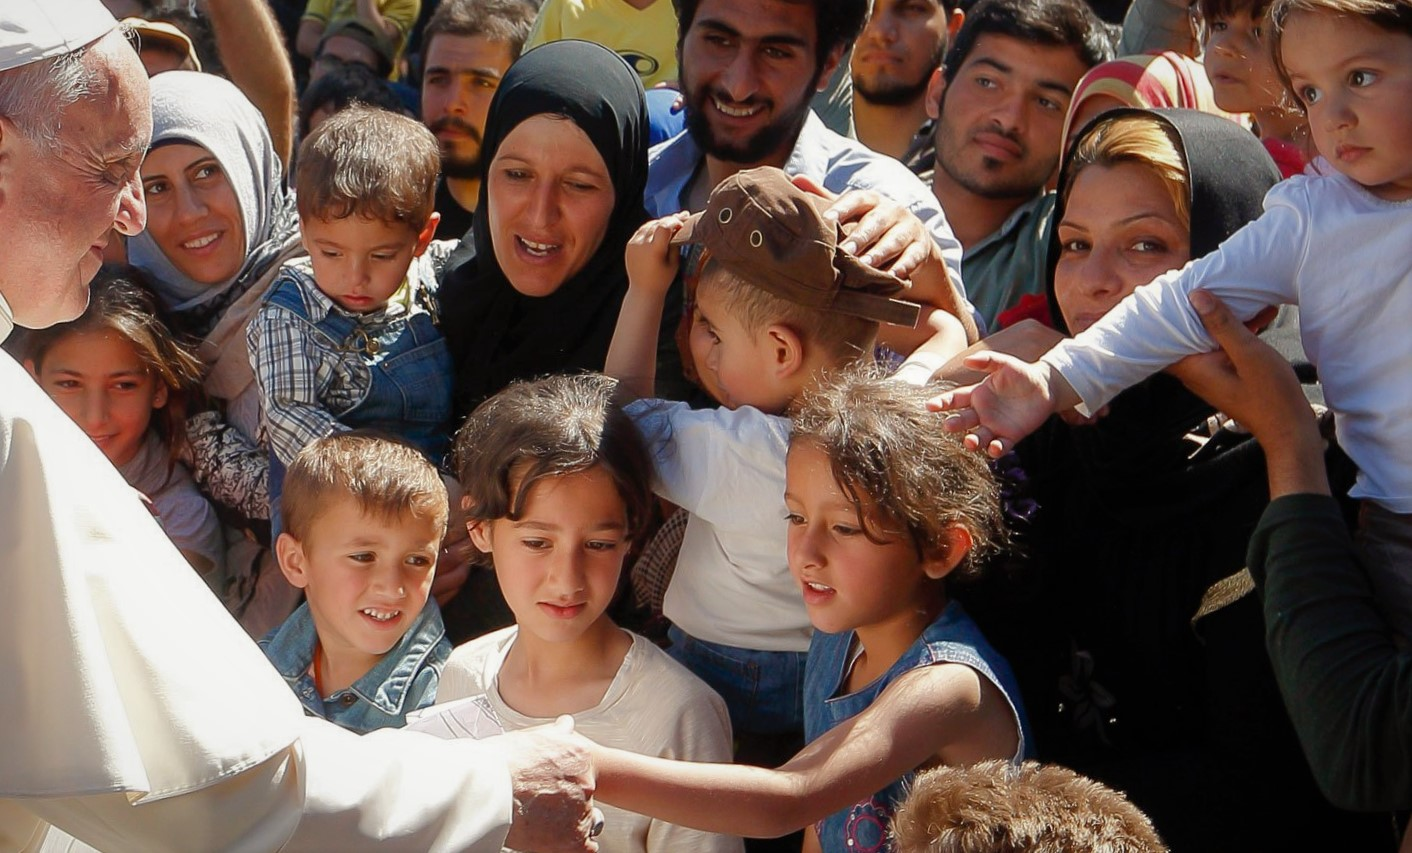 pope francis with refugees Migrants and Refugees